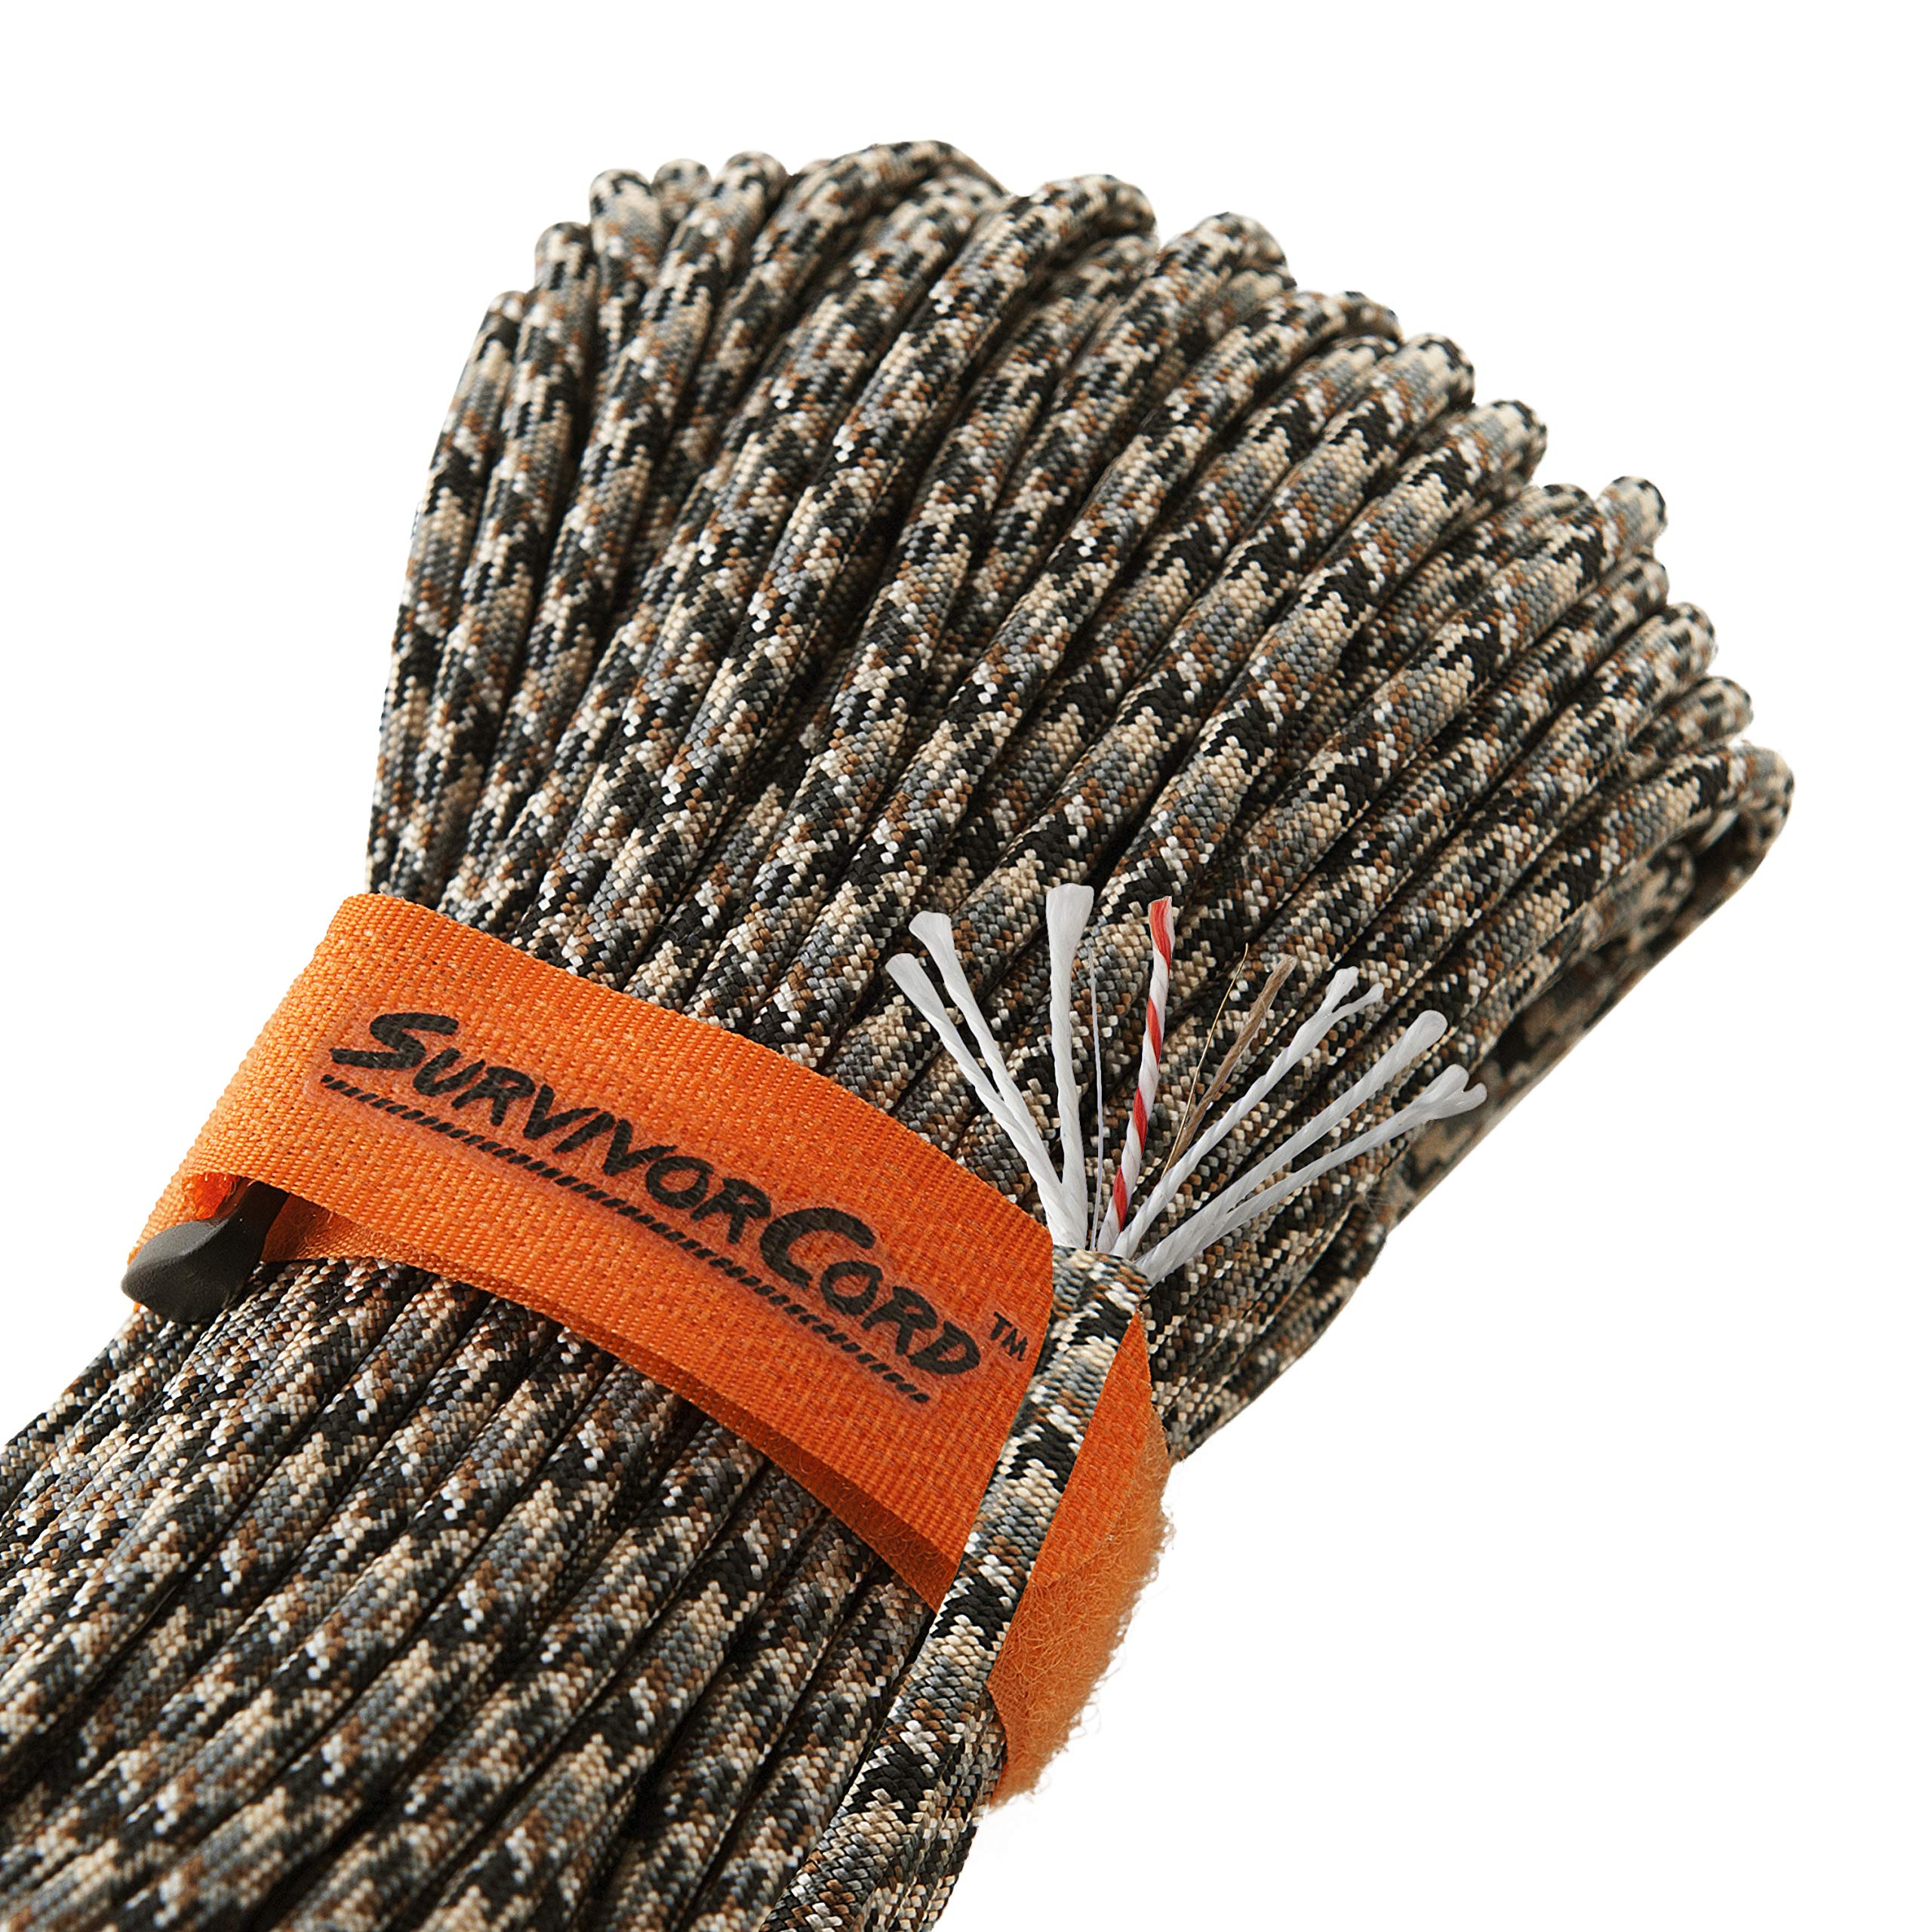 Titan SurvivorCord | Snakeskin | 103 Feet | Patented Military Type III 550 Paracord/Parachute Cord (3/16'' Diameter) with Integrated Fishing Line, Fire-Starter, and Utility Wire. by Titan Paracord (Image #1)